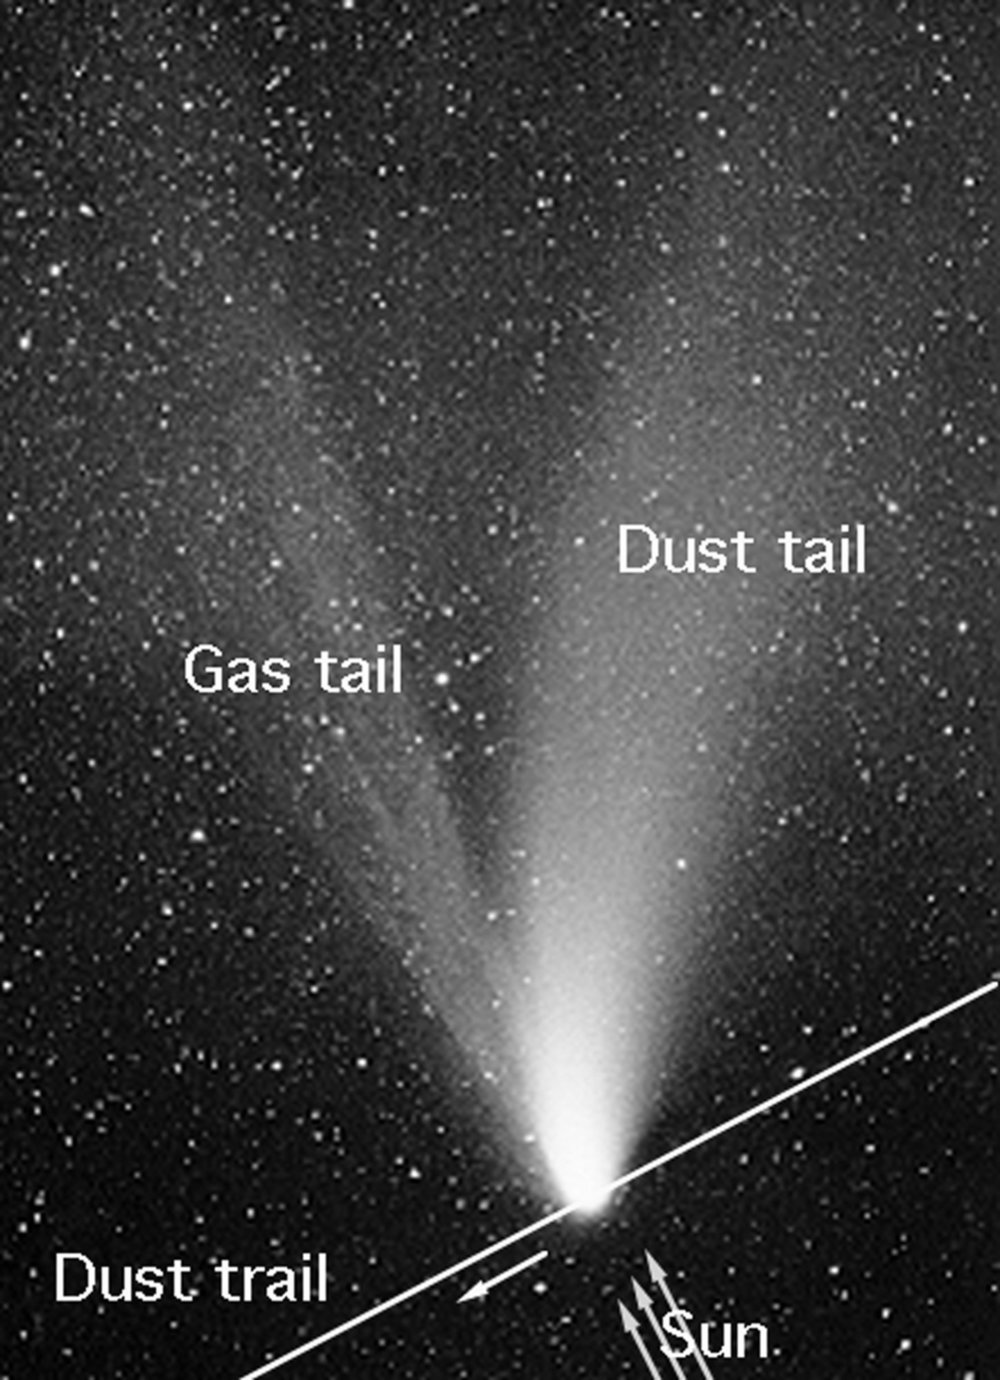 Artist's concept of a comet, with solar wind blowing back the coma into a tail.– Image Credit: NASA,CC BY-ND